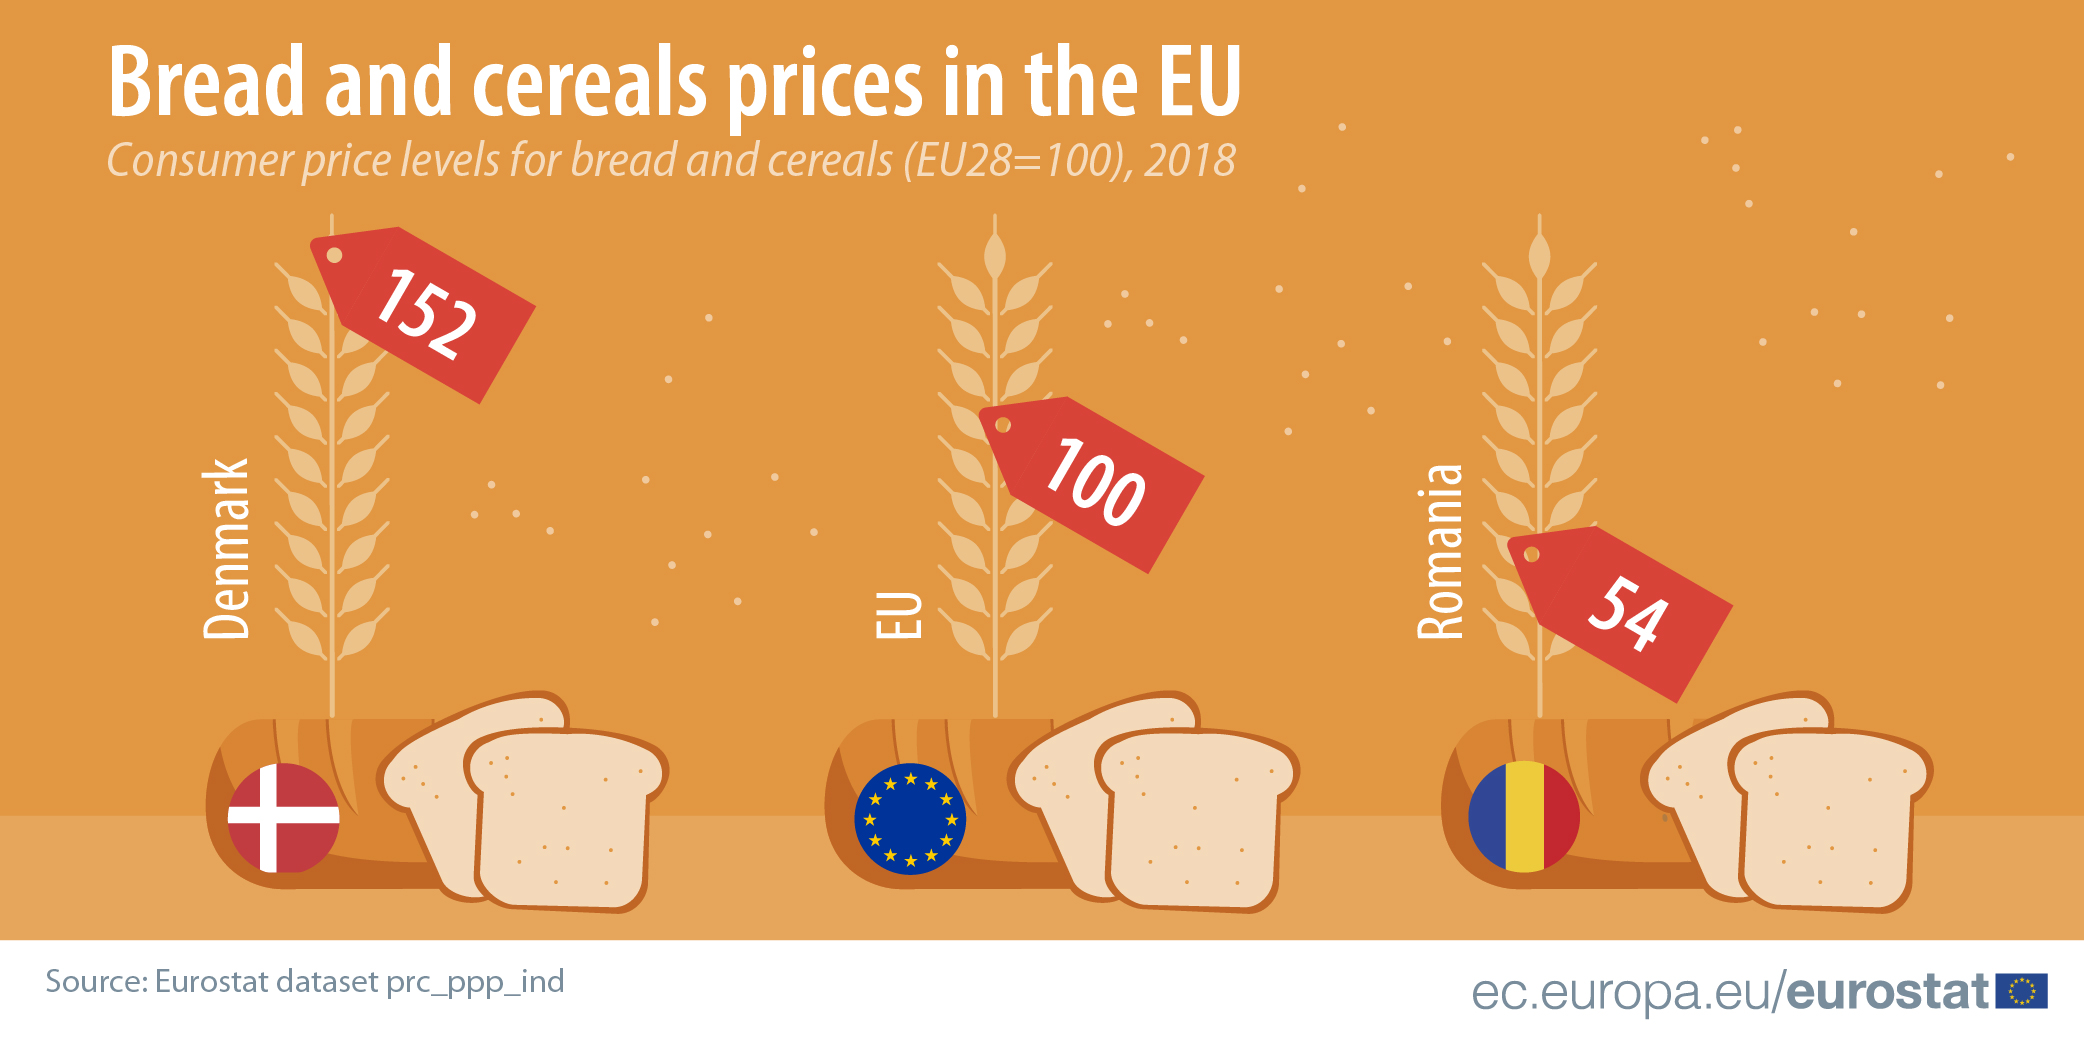 Bread and cereals comparative price levels 2018